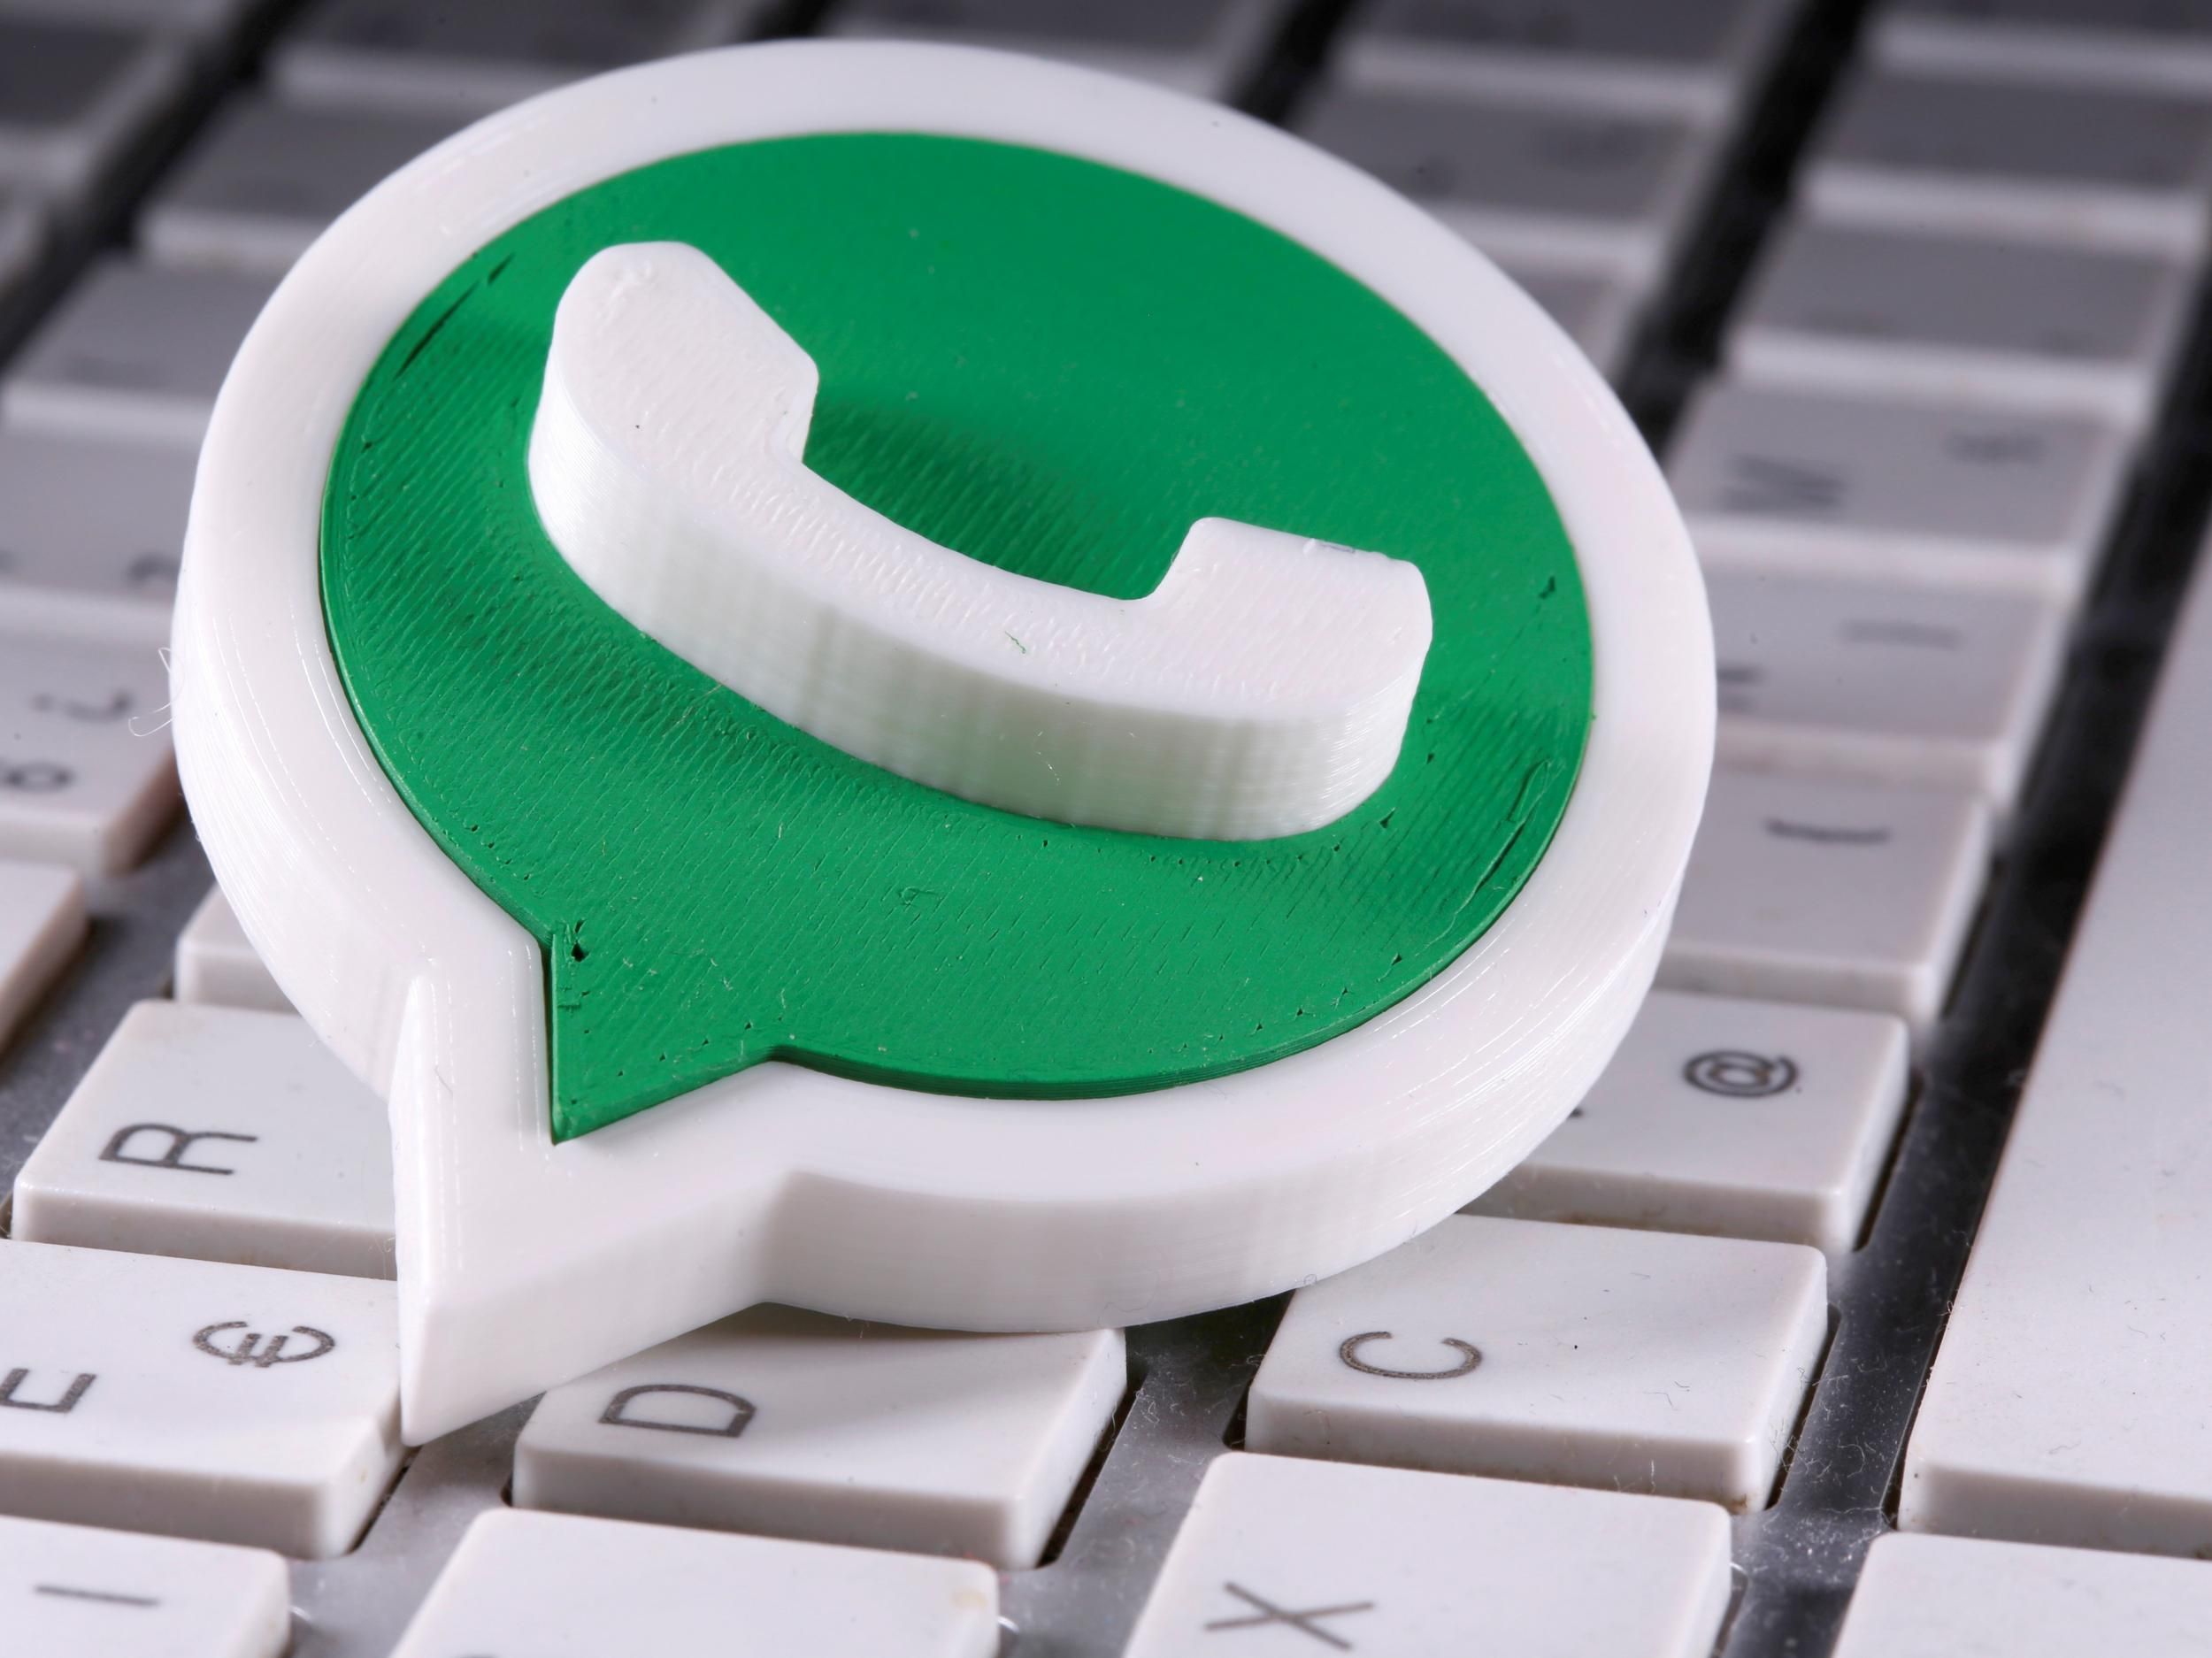 WhatsApp unveils major new update